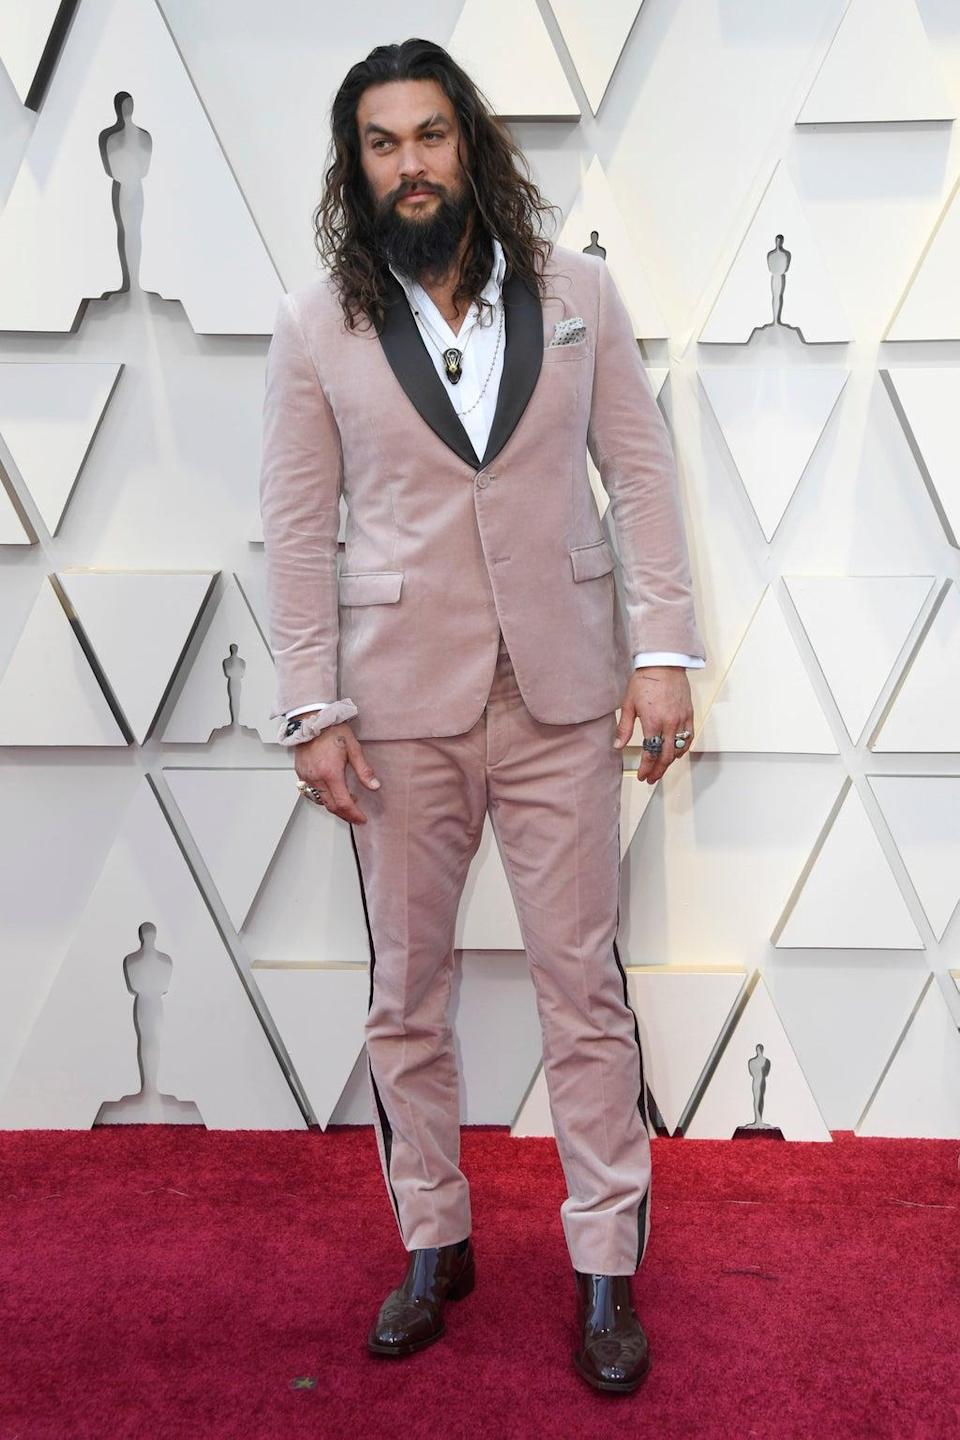 Jason Momoa at the Oscars 2019 (Getty Images)